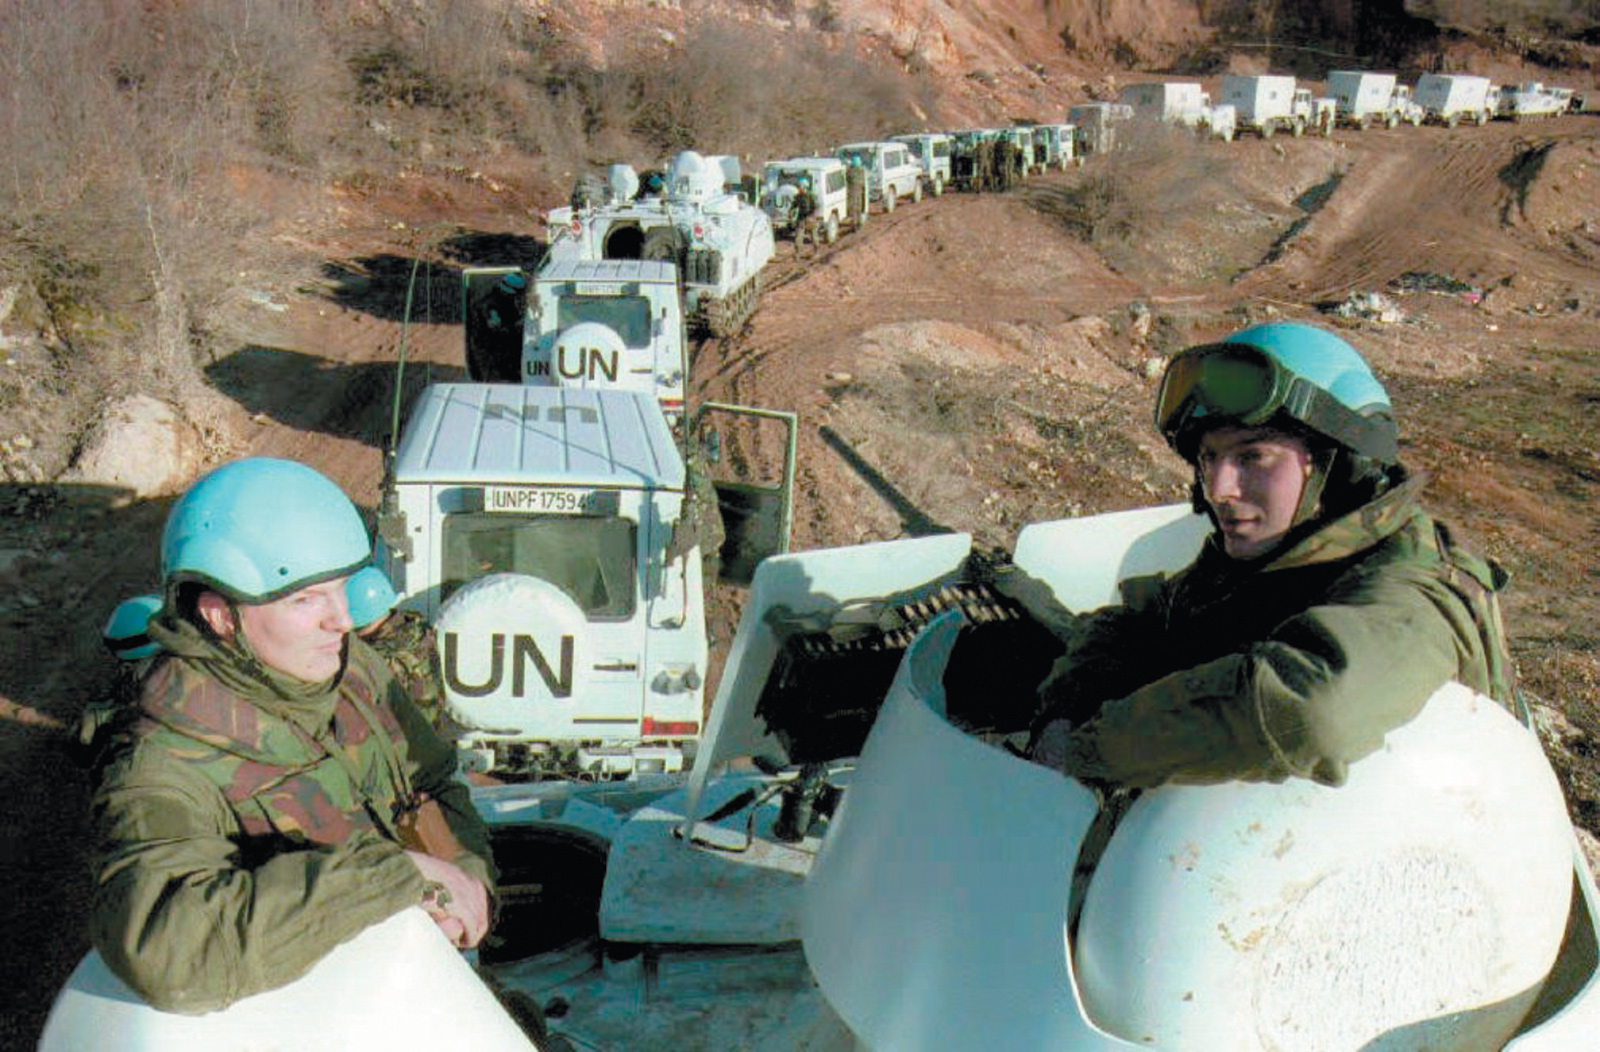 Dutch soldiers in a UN convoy on its way to Lukavac, at the same time that another convoy was sent to Srebrenica, Bosnia-Herzegovina, February 1994. In July 1995 UN peacekeepers were unable to defend Srebrenica against the attacks of the Bosnian Serbs, who captured the city and massacred more than eight thousand Bosnian Muslims.